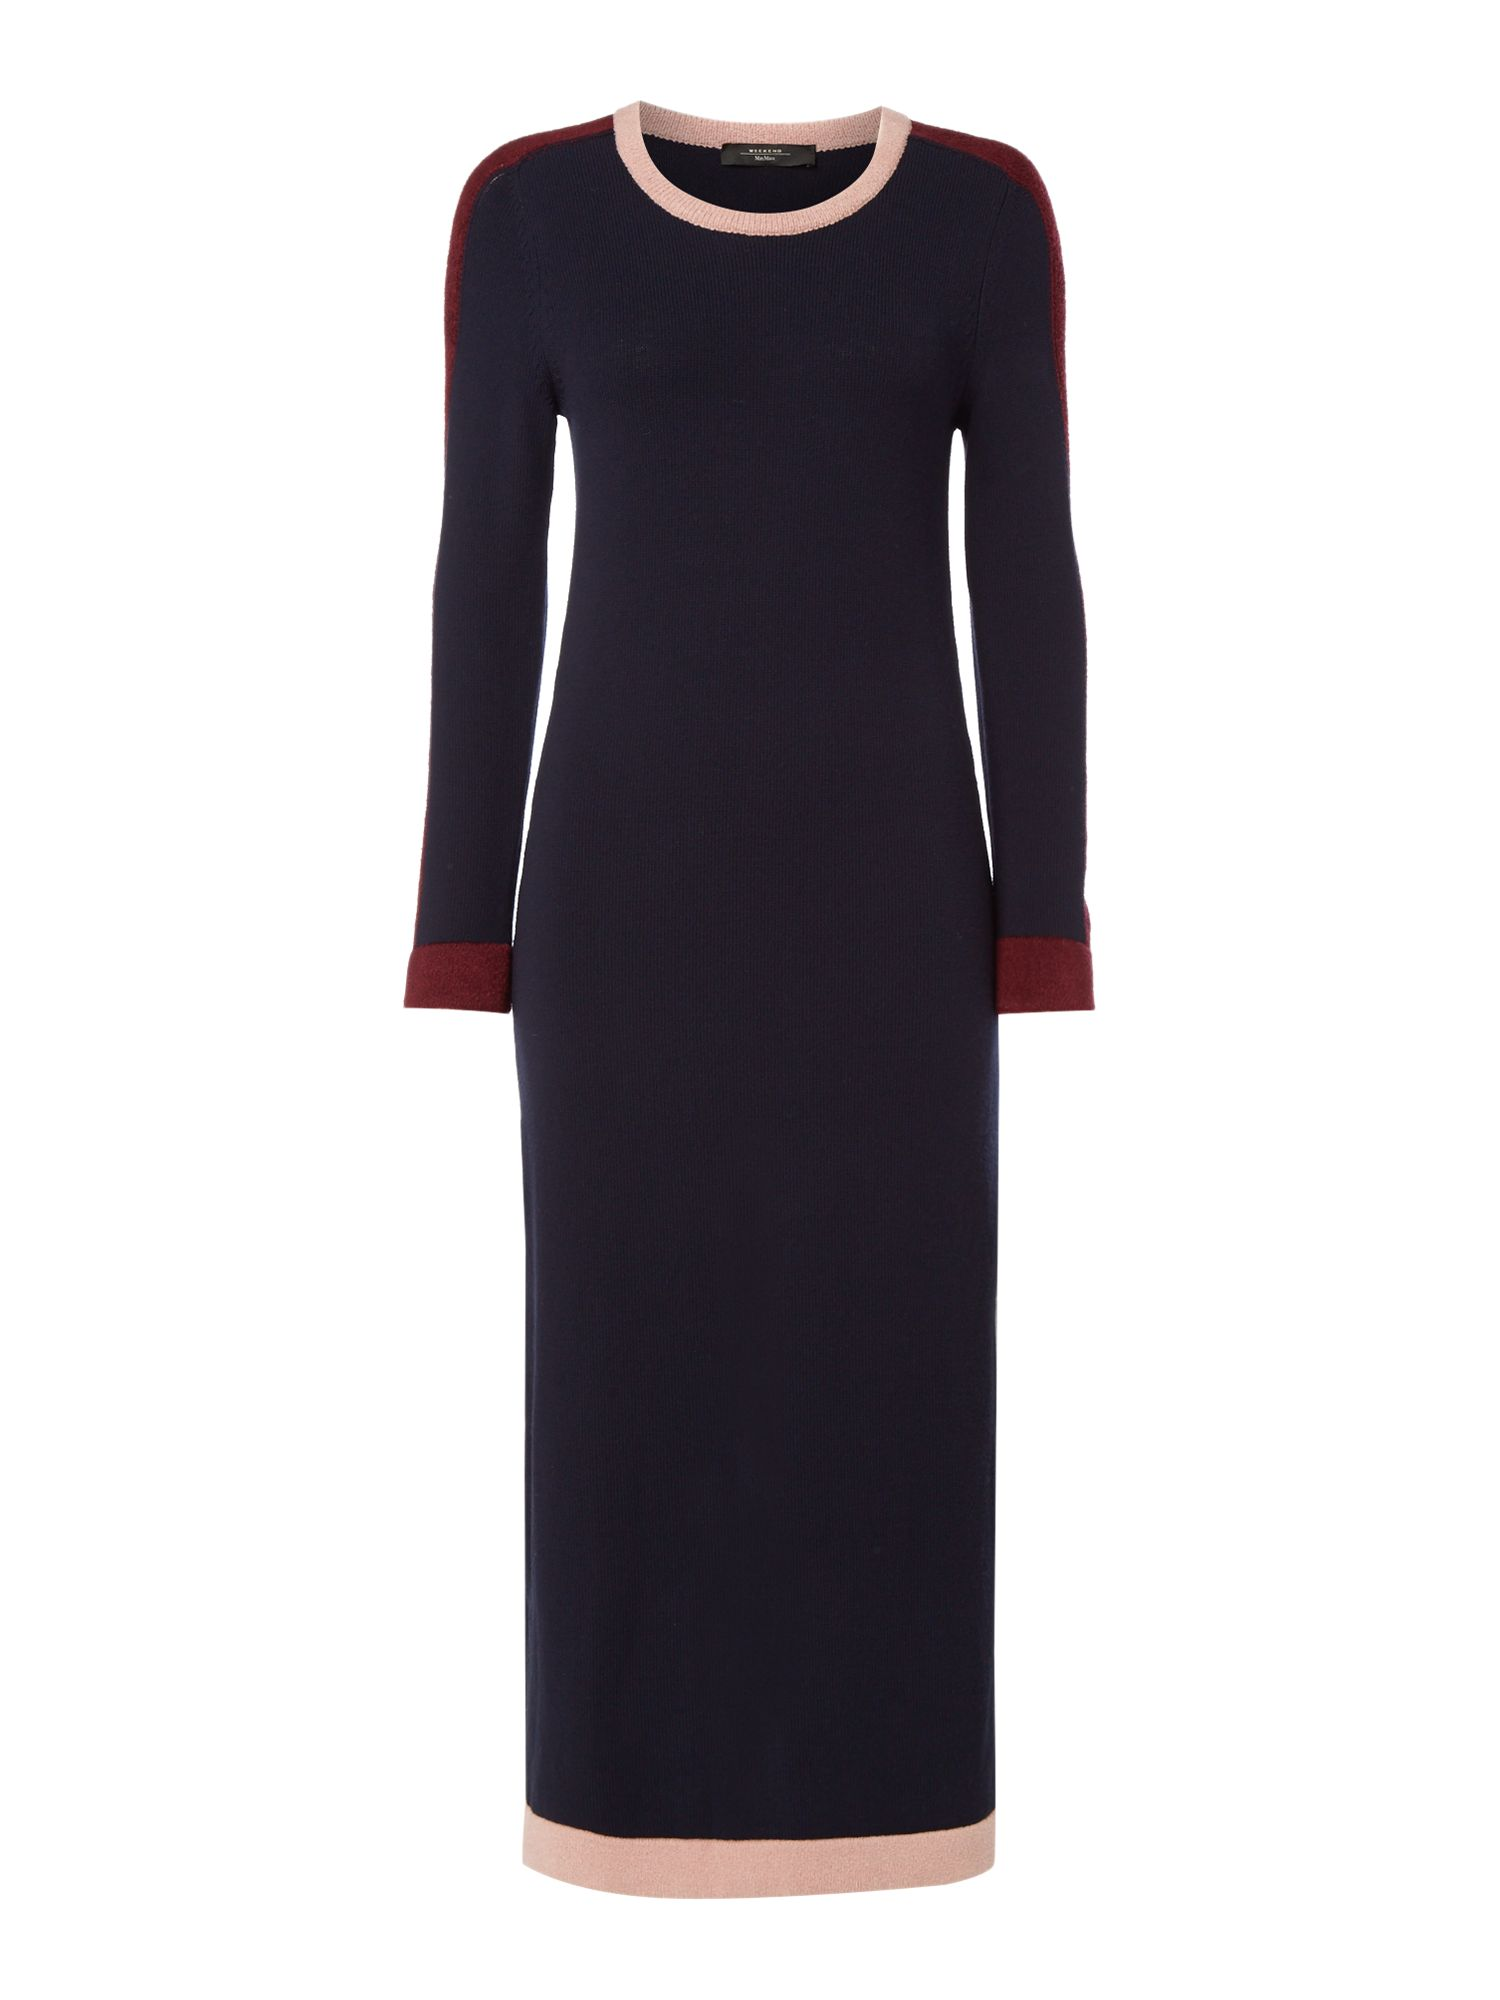 Max Mara Weekend Era Midi Long Sleeve Crew Neck Jersey Dress, Ultramarine